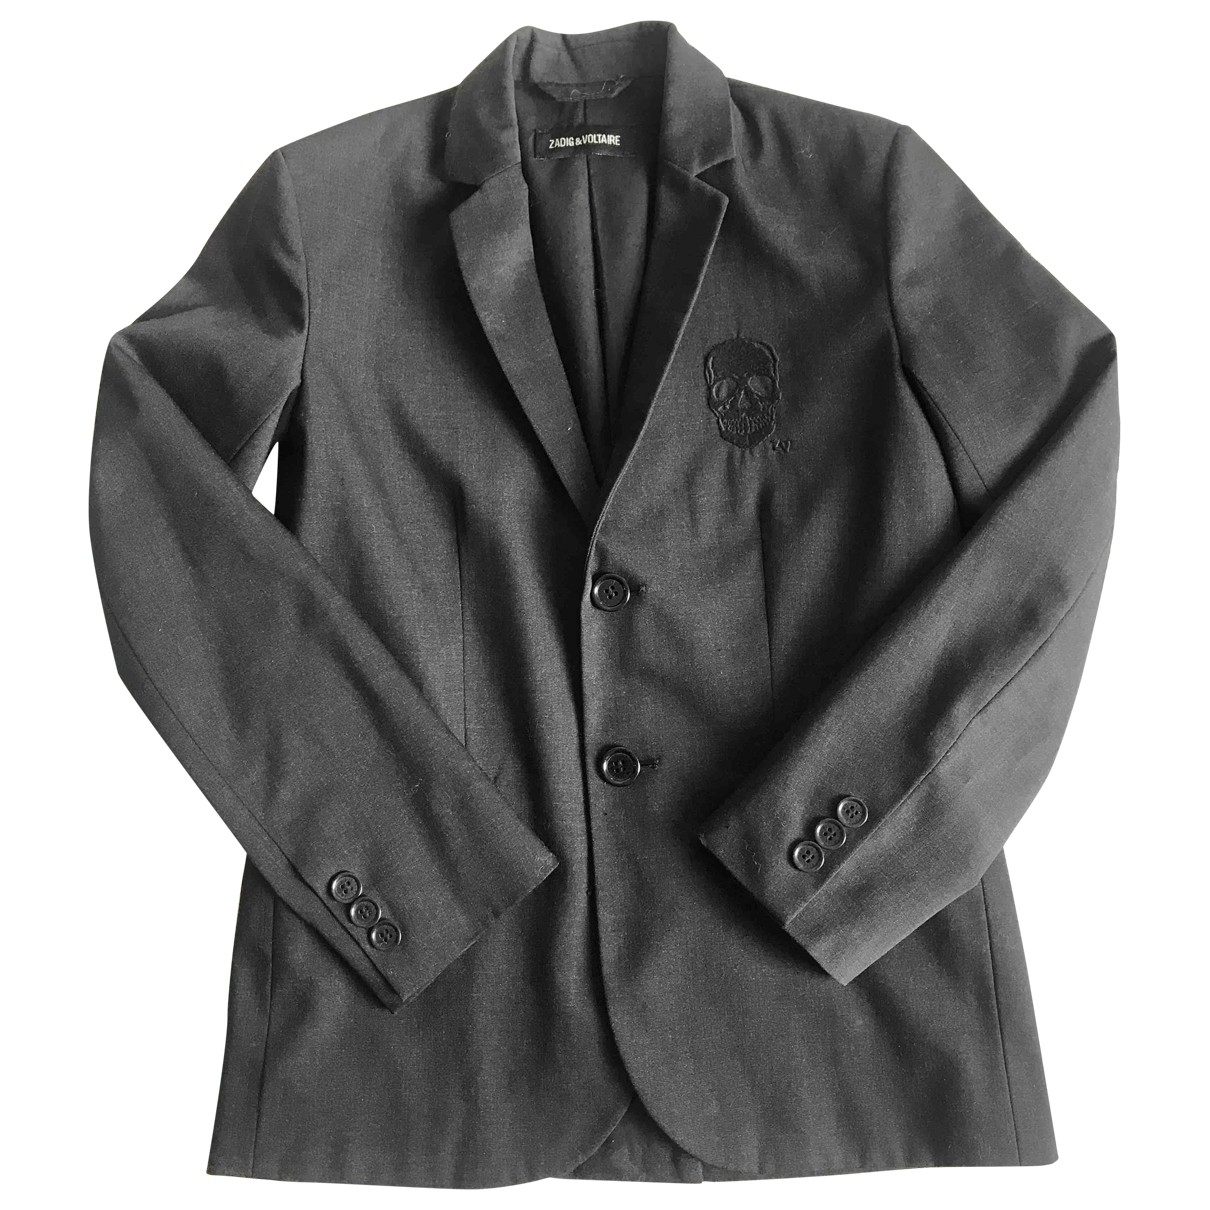 Zadig & Voltaire \N Black jacket & coat for Kids 10 years - up to 142cm FR